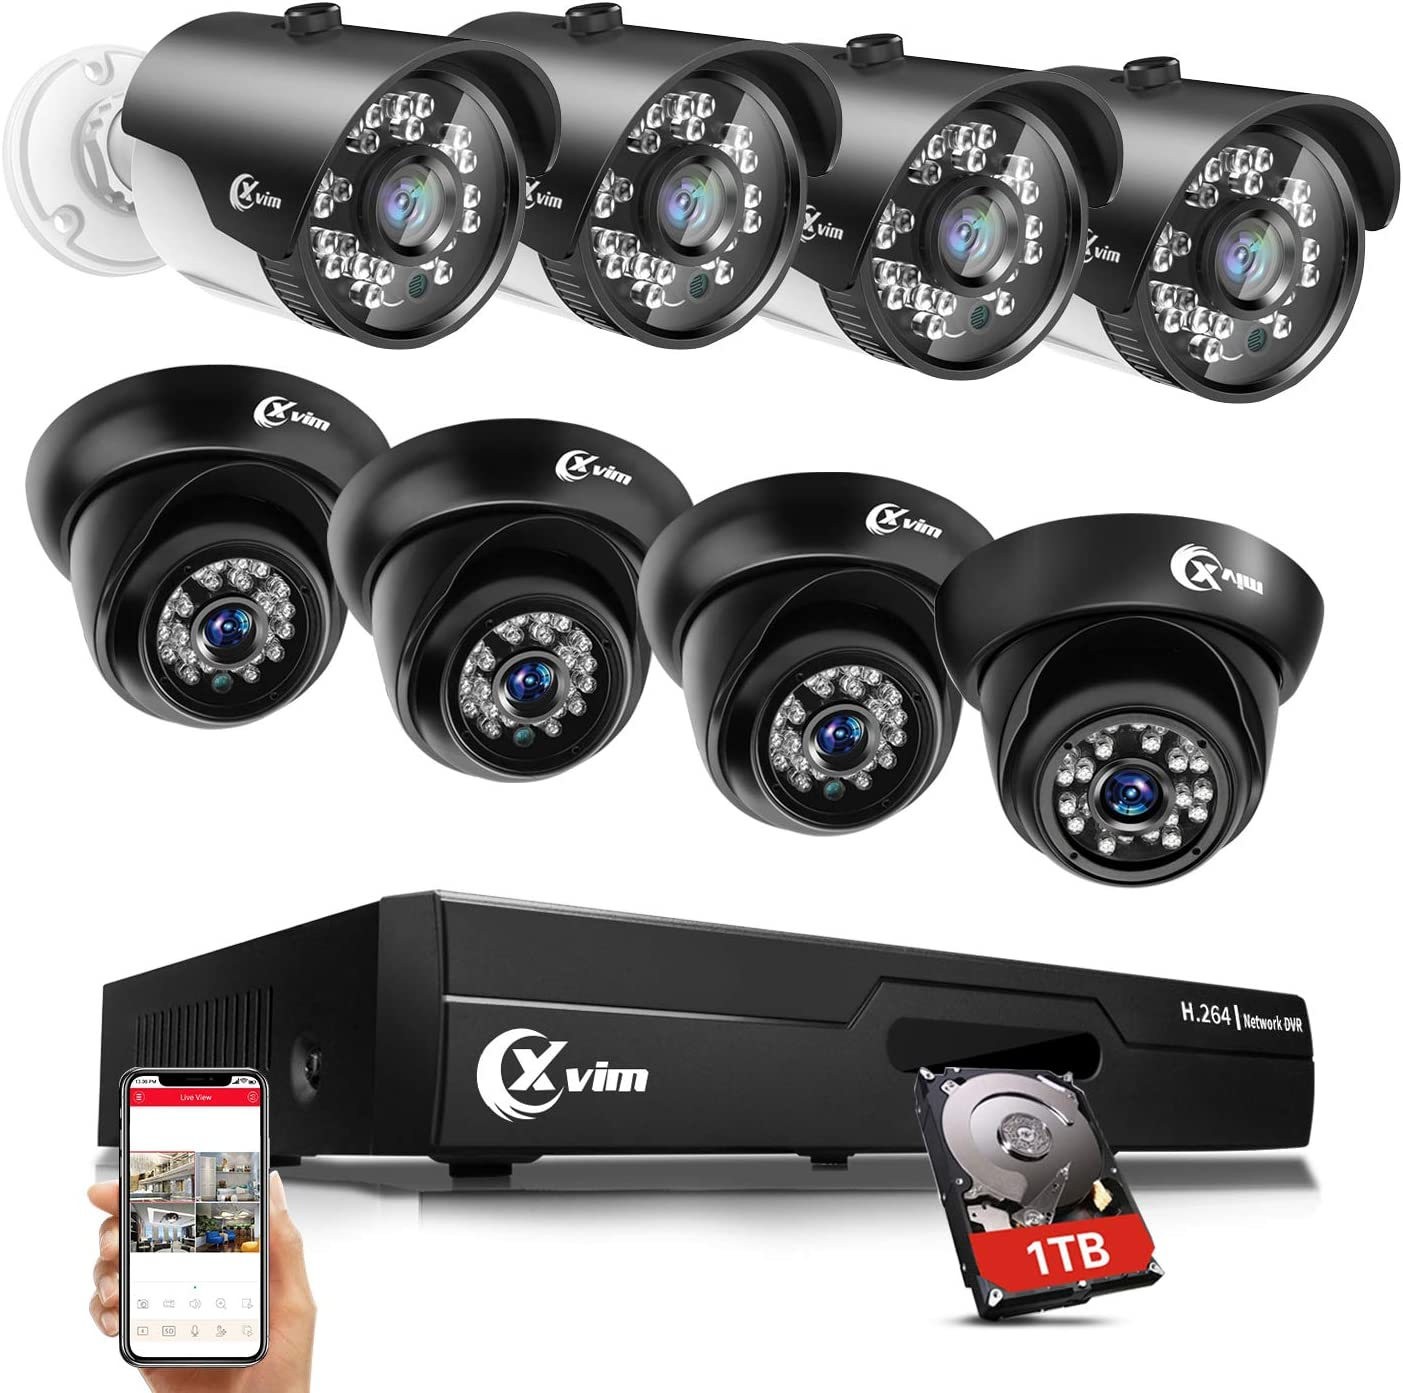 SMONET 5MP Security Camera System,8CH Wired Surveillance DVR with 8pcs Home Indoor Outdoor IP66 Weatherproof CCTV Cameras,Night Vision Remote Access,Motion Detection,NO HDD